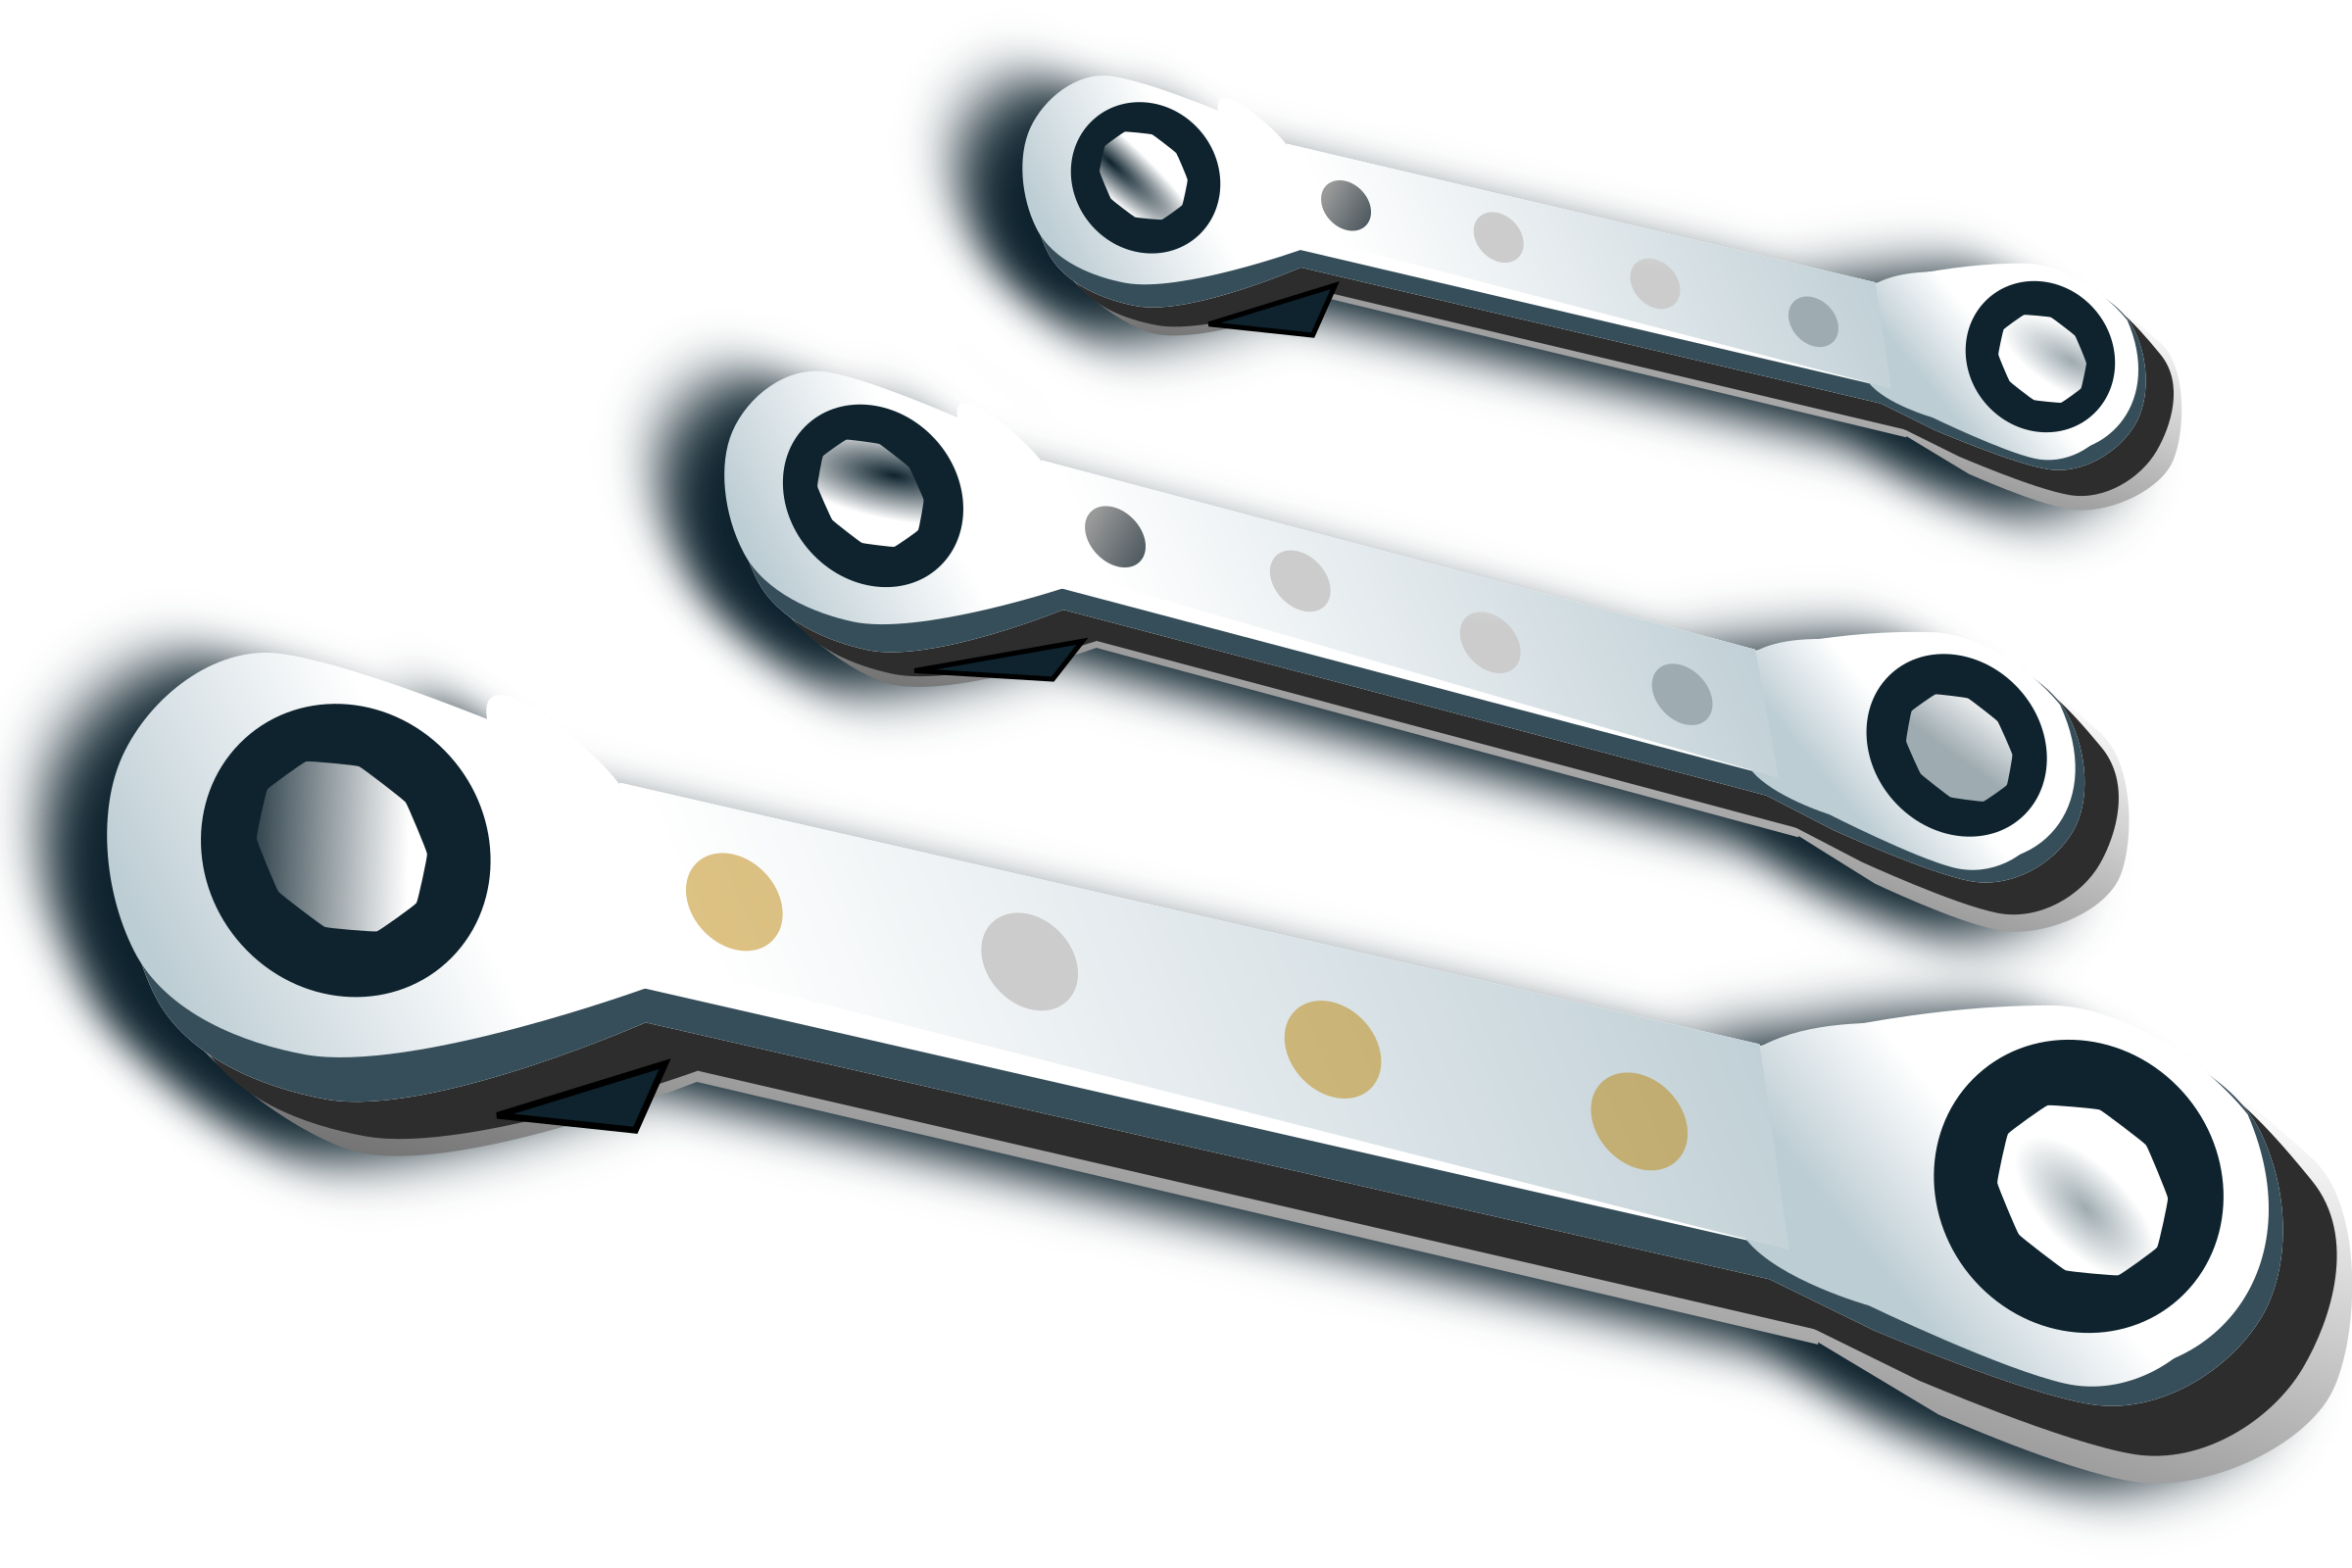 ratchet spanner set by netalloy